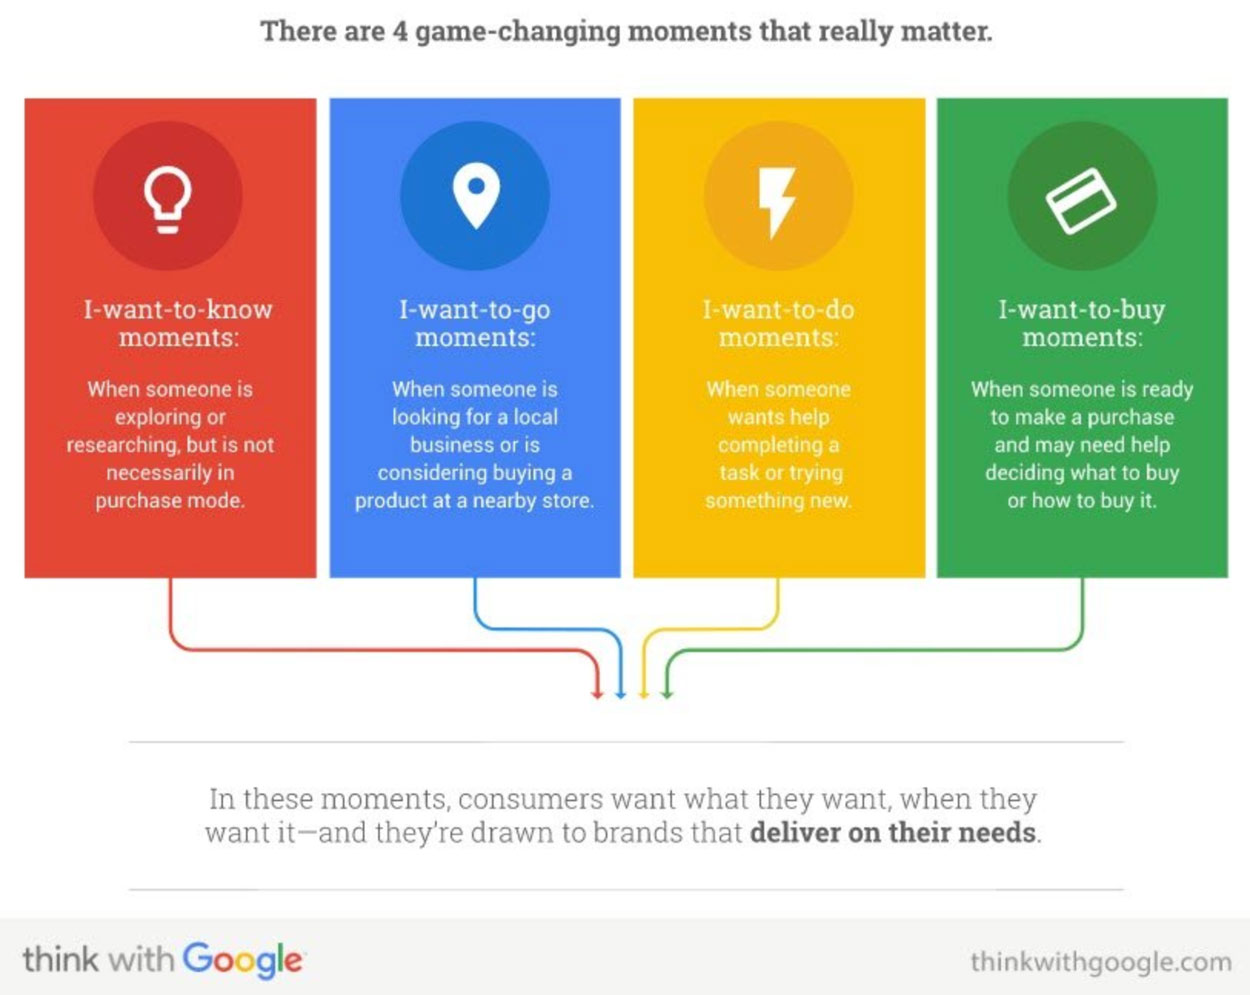 infographic-4-game-changing-moments